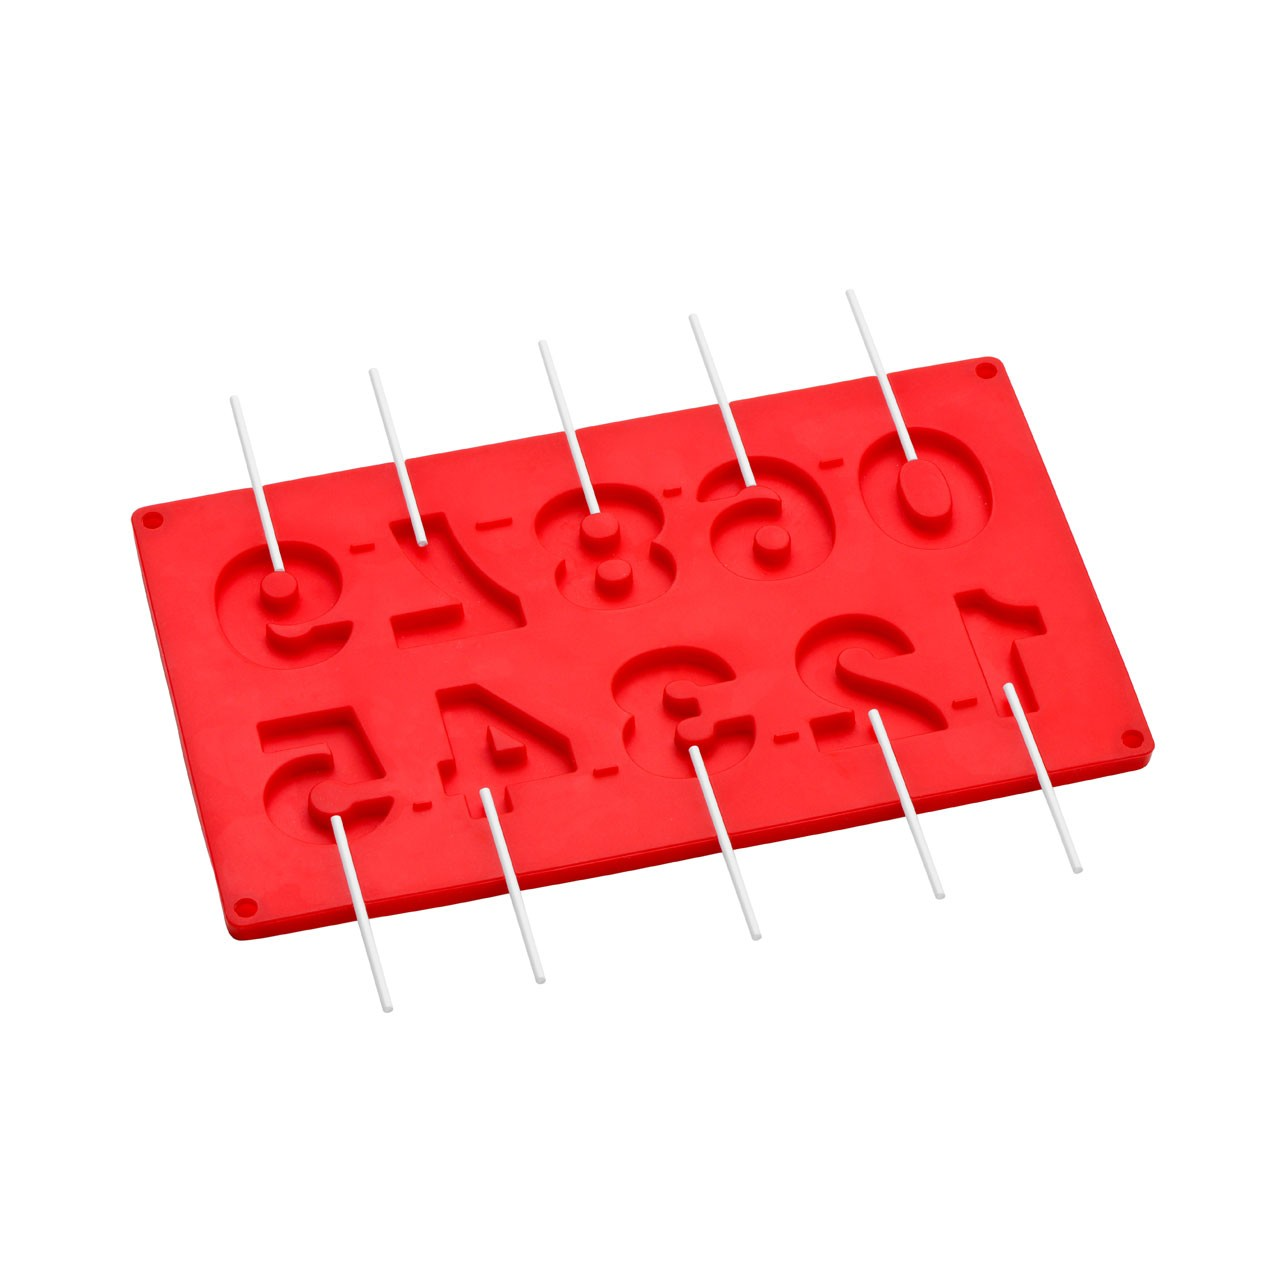 10 Number Cake Pop Silicone Mould - Red